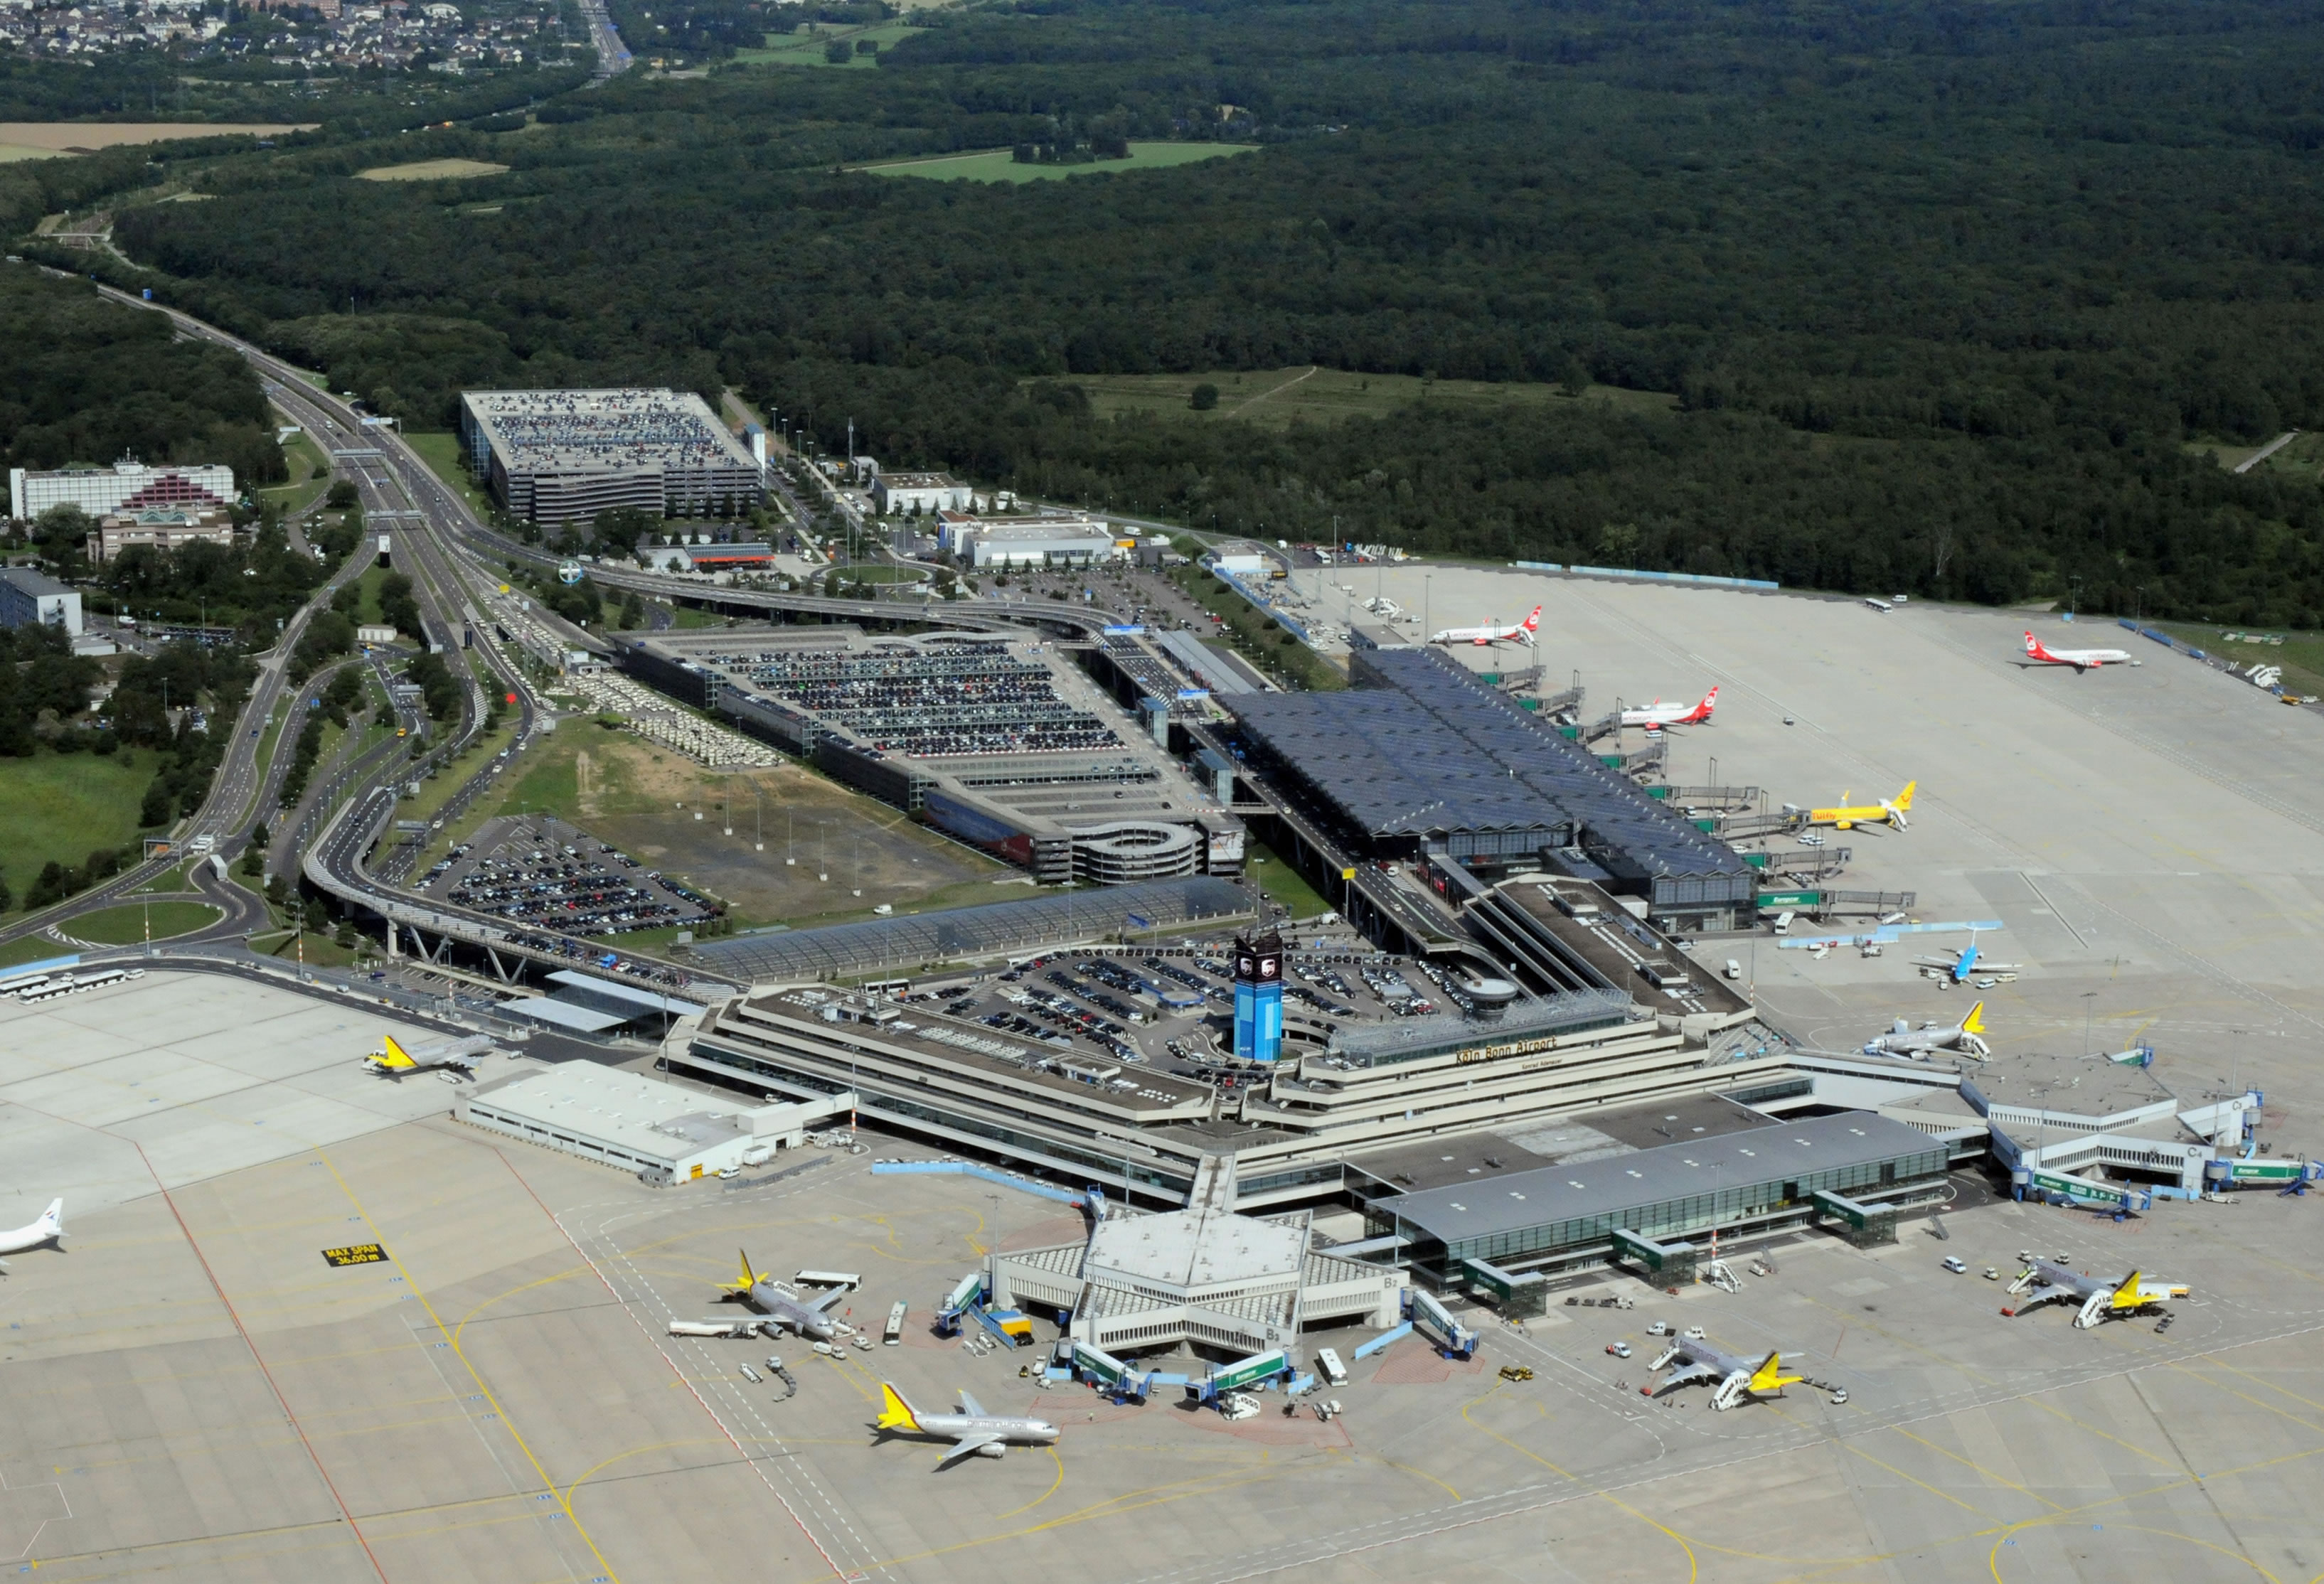 Cologne Bonn Airport from above